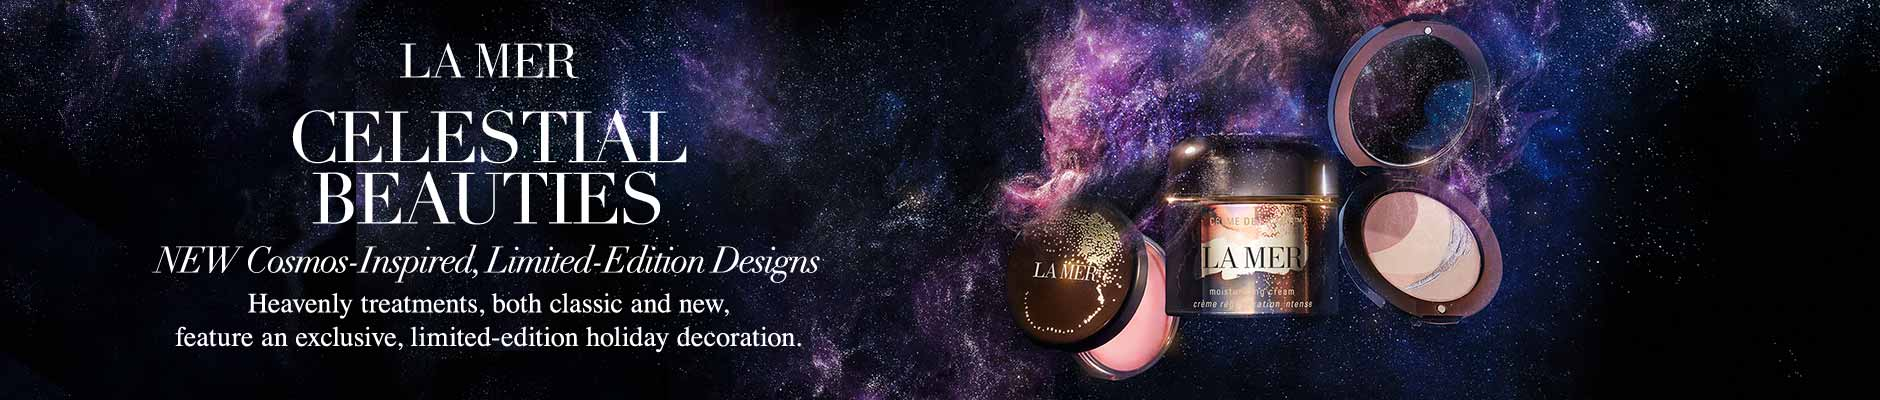 La Mer Celestial Beauties: New Cosmos-Inspired, Limited-Edition Designs - Heavenly treatments, both classic and new, feature an exclusive, limited-edition holiday decoration.